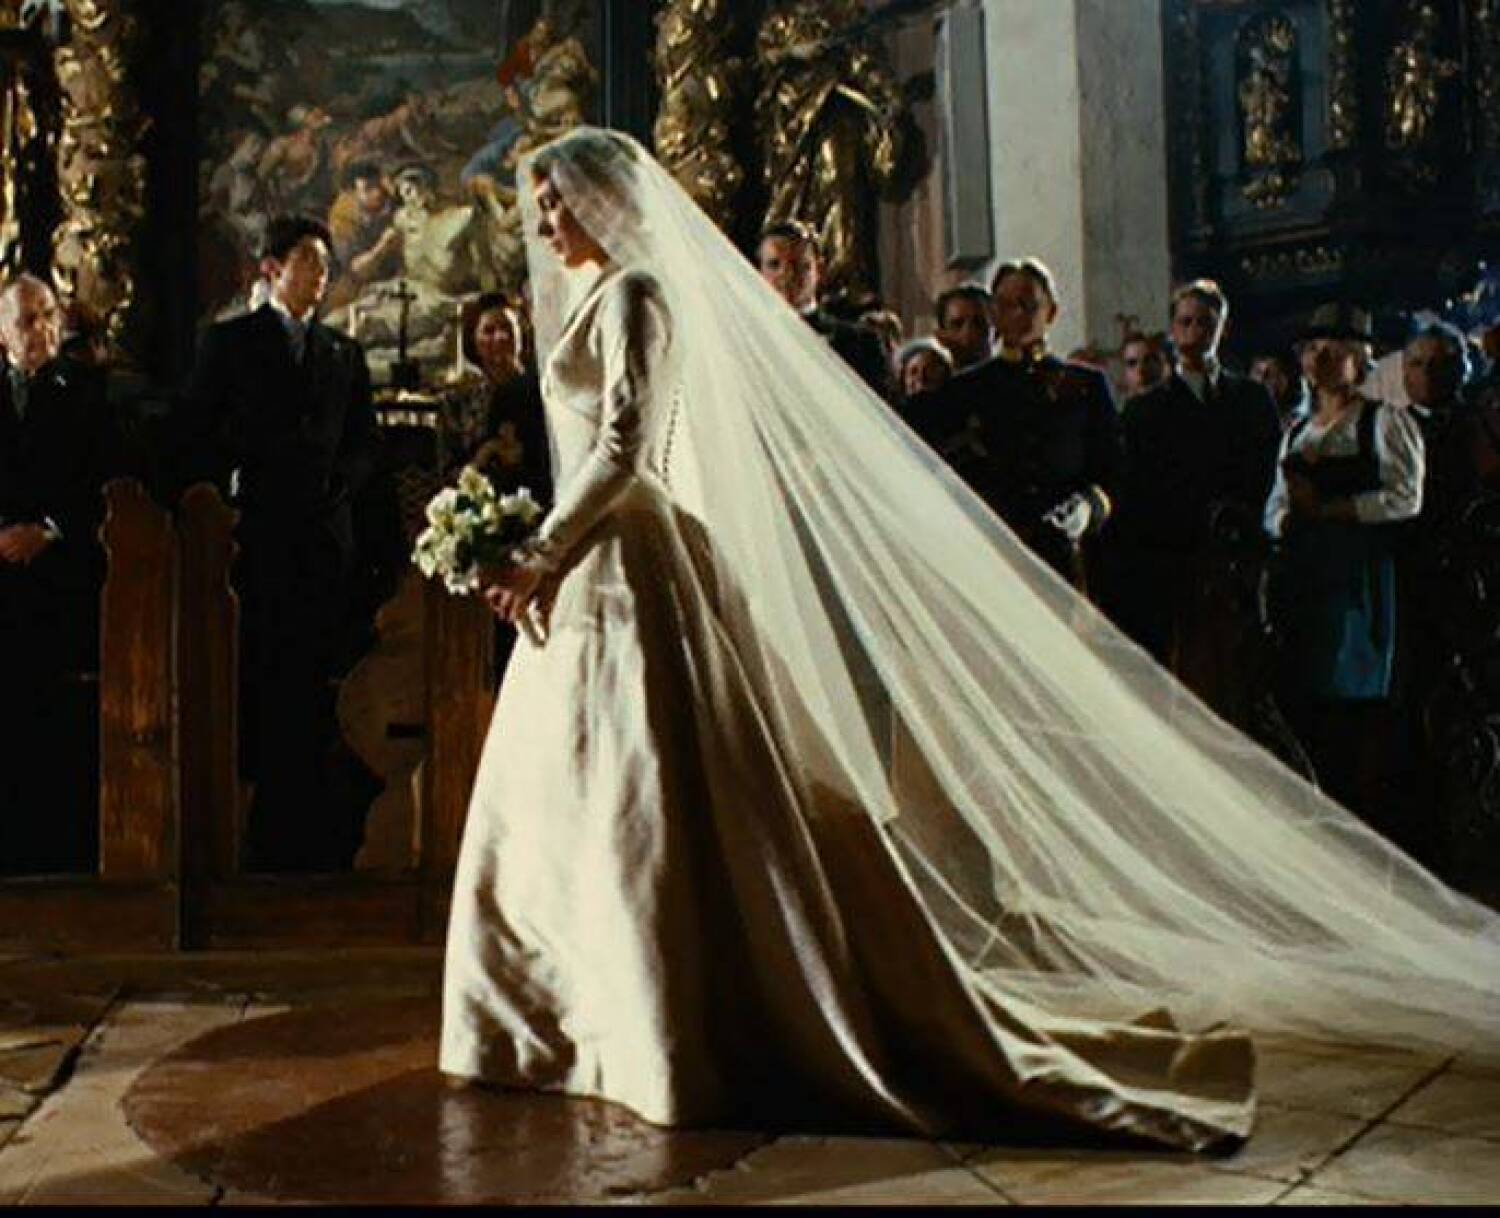 JULIE ANDREWS THE SOUND OF MUSIC WEDDING GOWN Current Price 18000